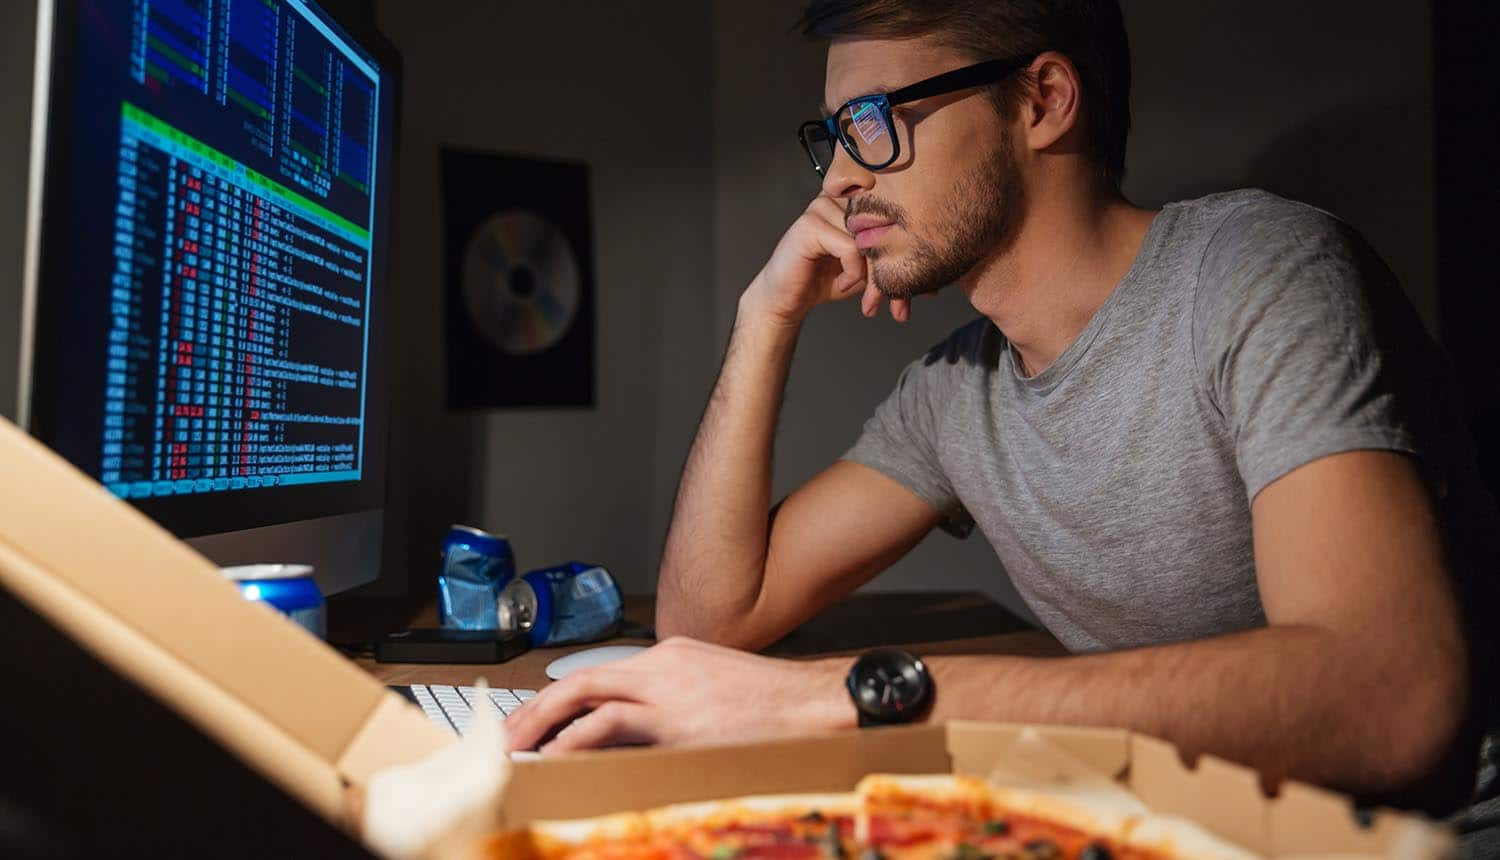 Image of developer in front of screen writing secure code code